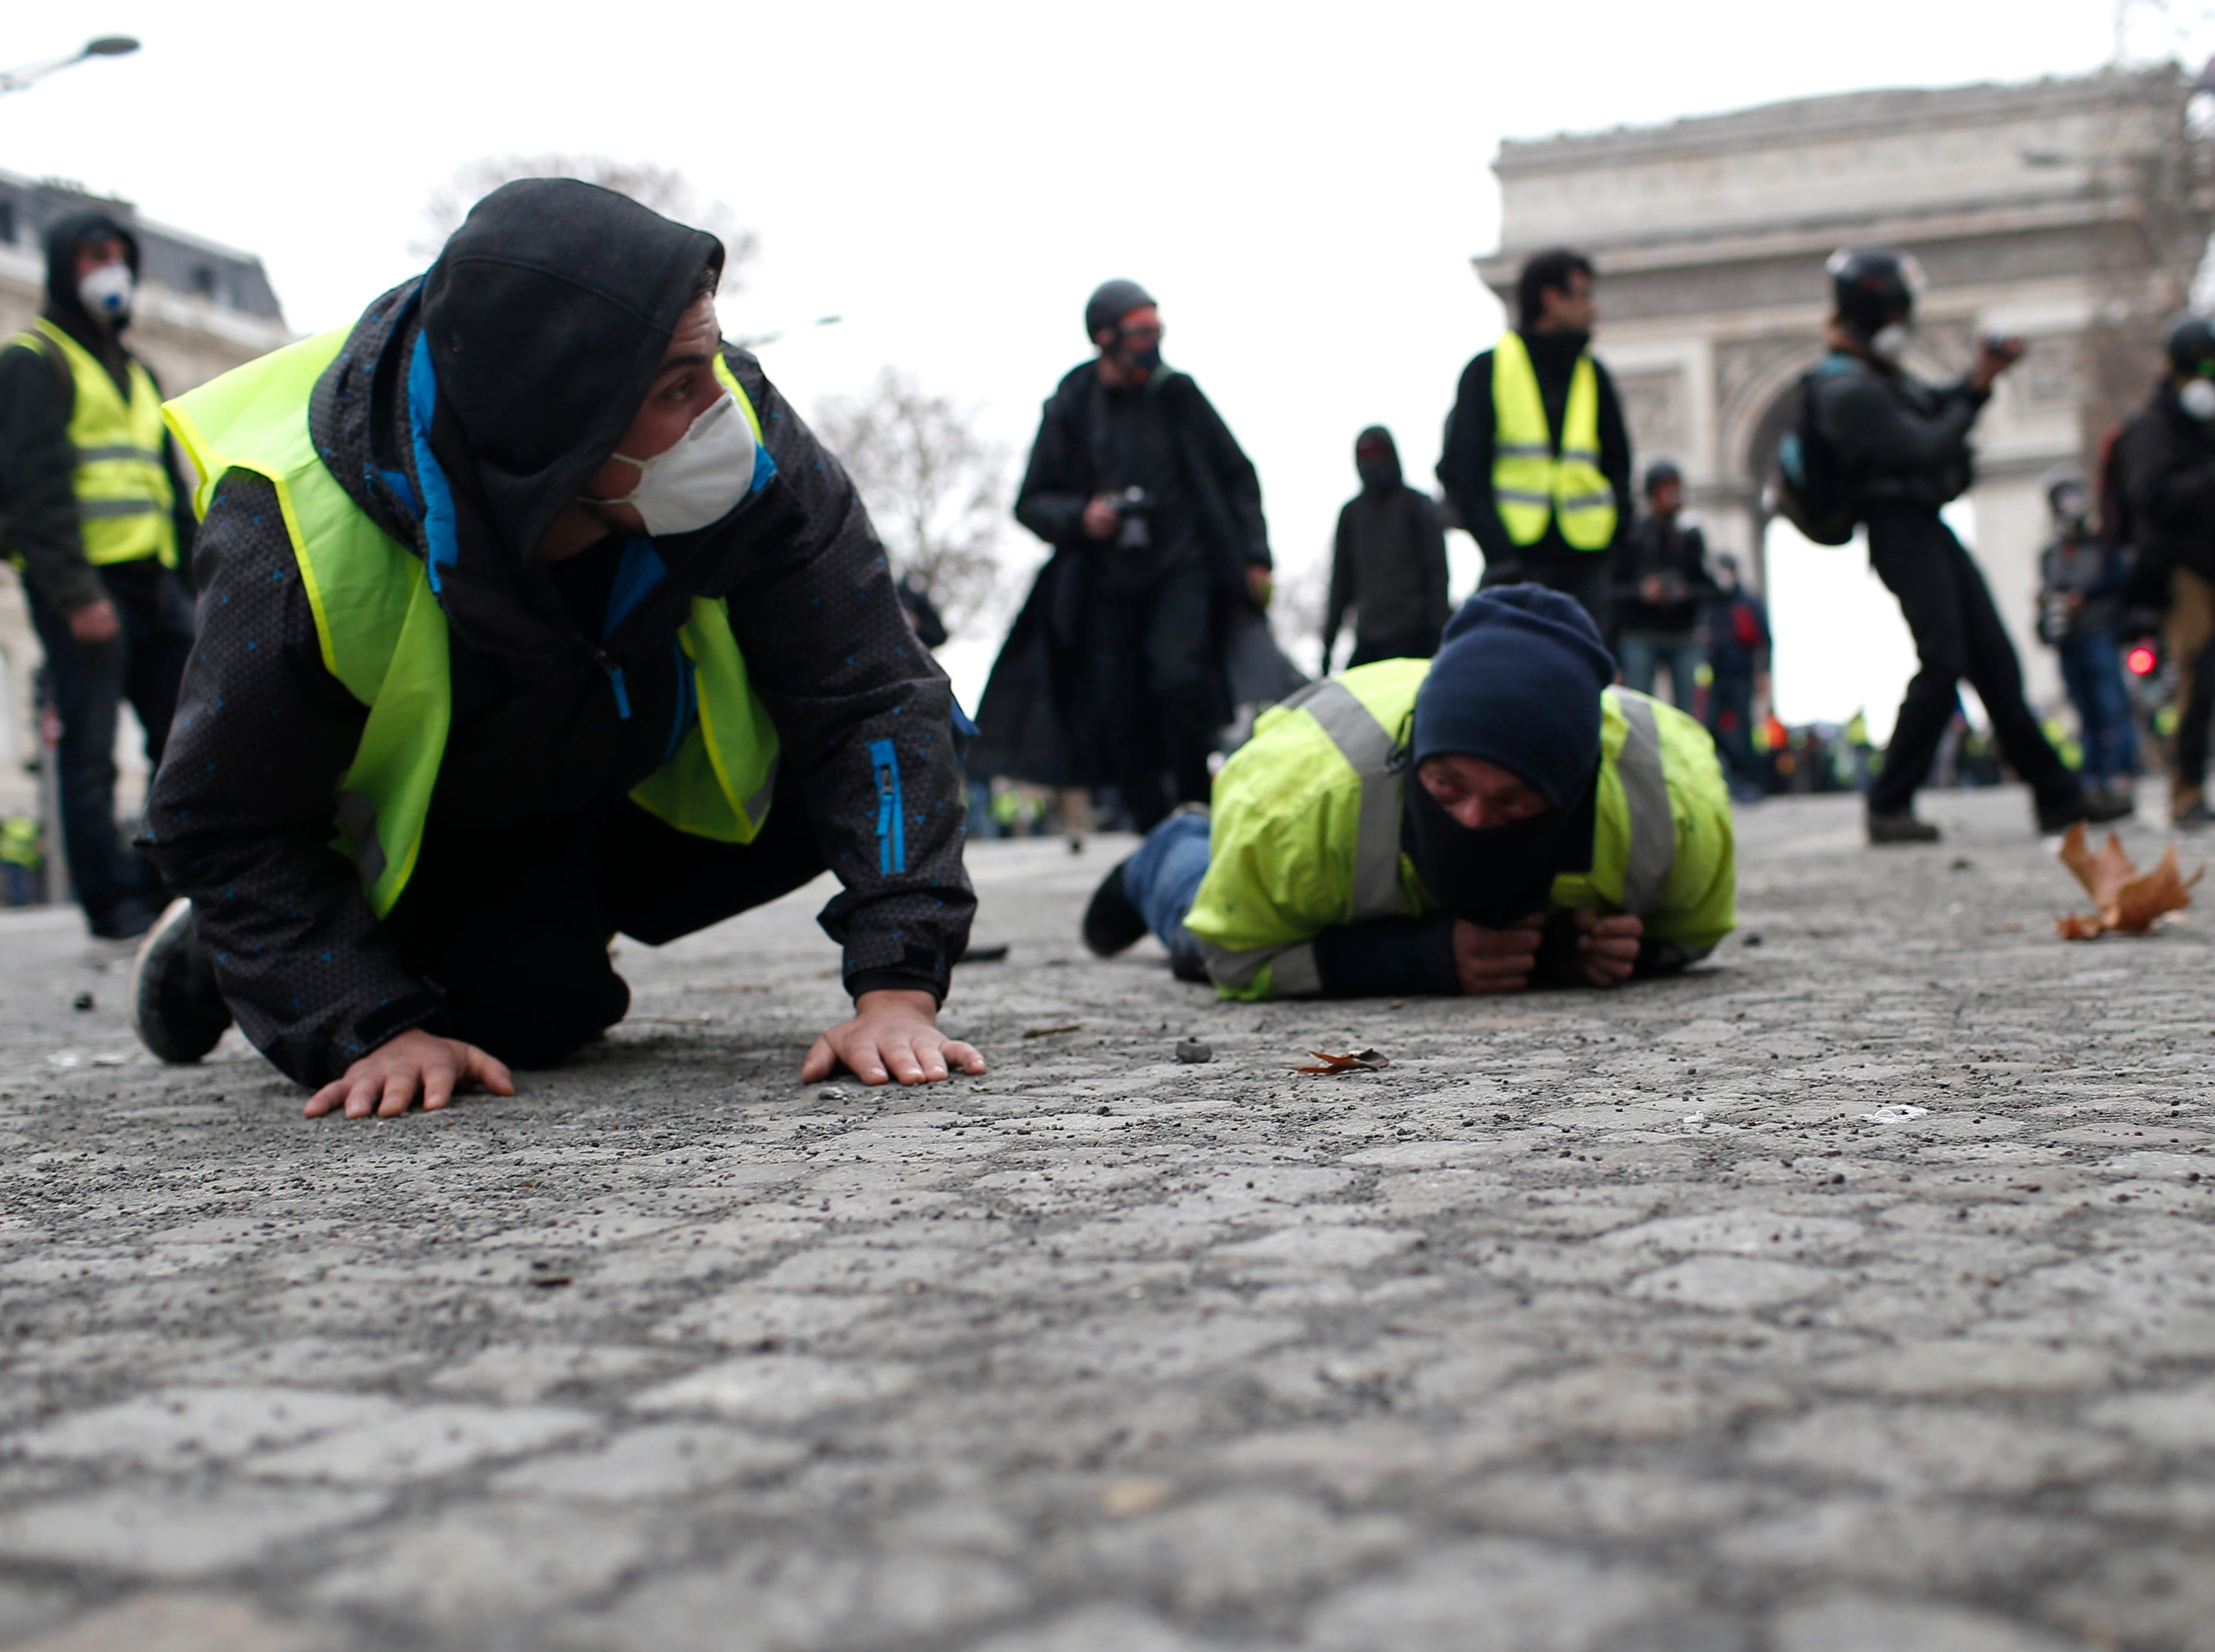 Demonstrators drop to the ground on the Champs-Elysees avenue during a protest Saturday, Dec. 8, 2018 in Paris. Crowds of yellow-vested protesters angry at President Emmanuel Macron and France's high taxes tried to converge on the presidential palace Saturday, some scuffling with police firing tear gas, amid exceptional security measures aimed at preventing a repeat of last week's rioting.